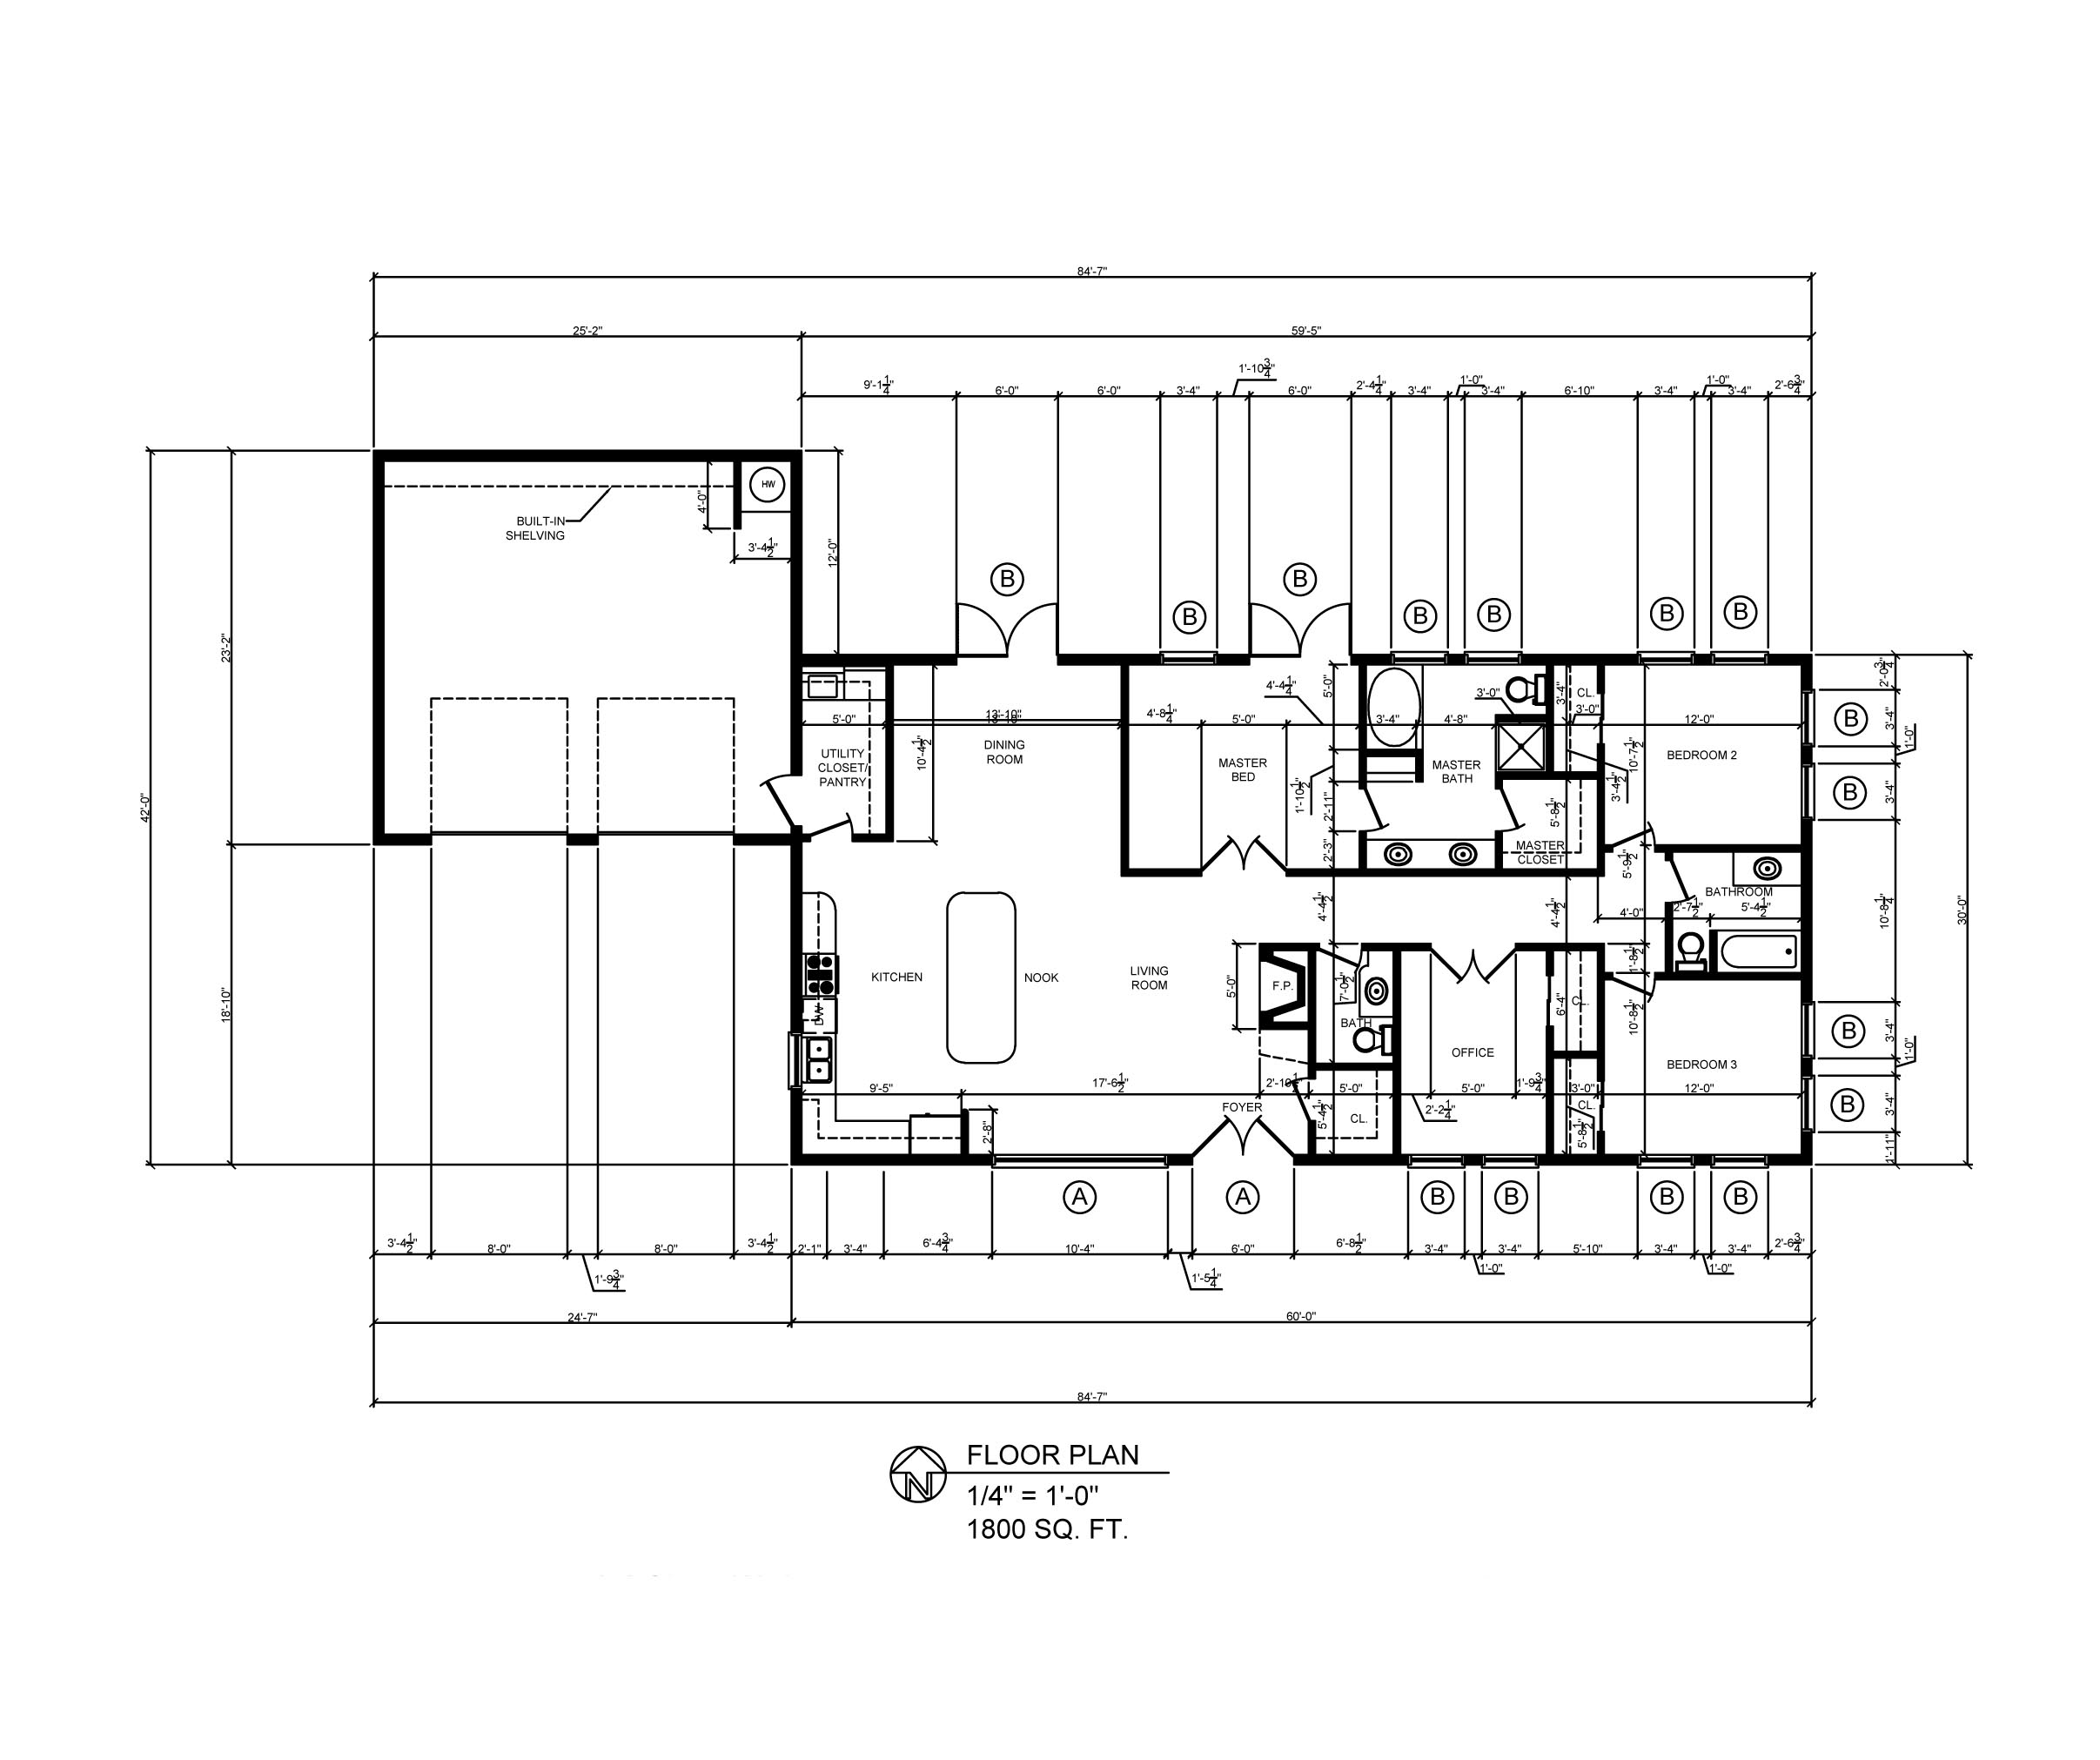 Autocad architectural drawings by steven paulsen at for Architecture design drawing